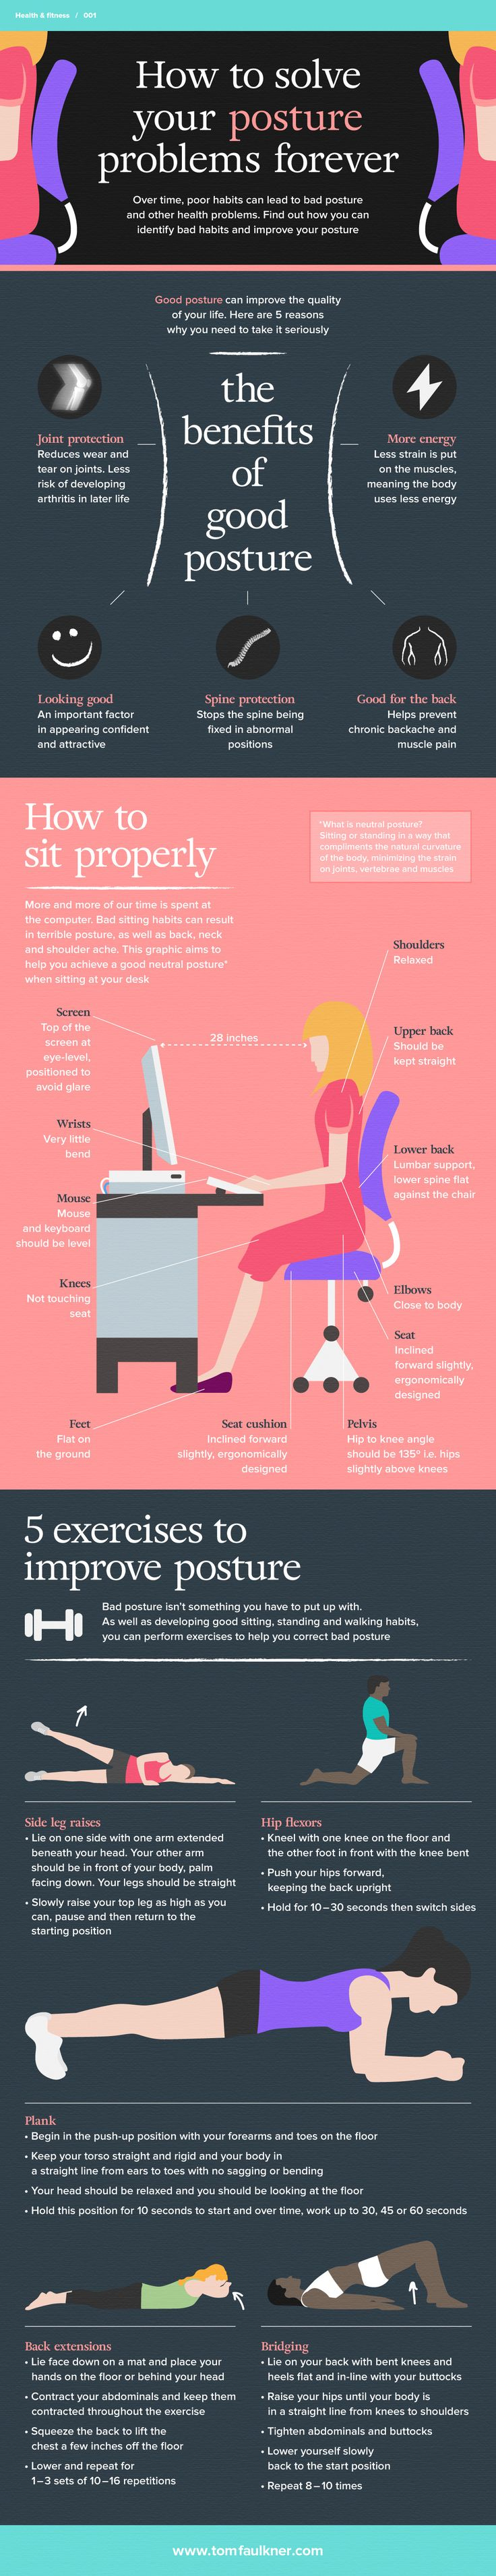 infographic about how to improve your posture